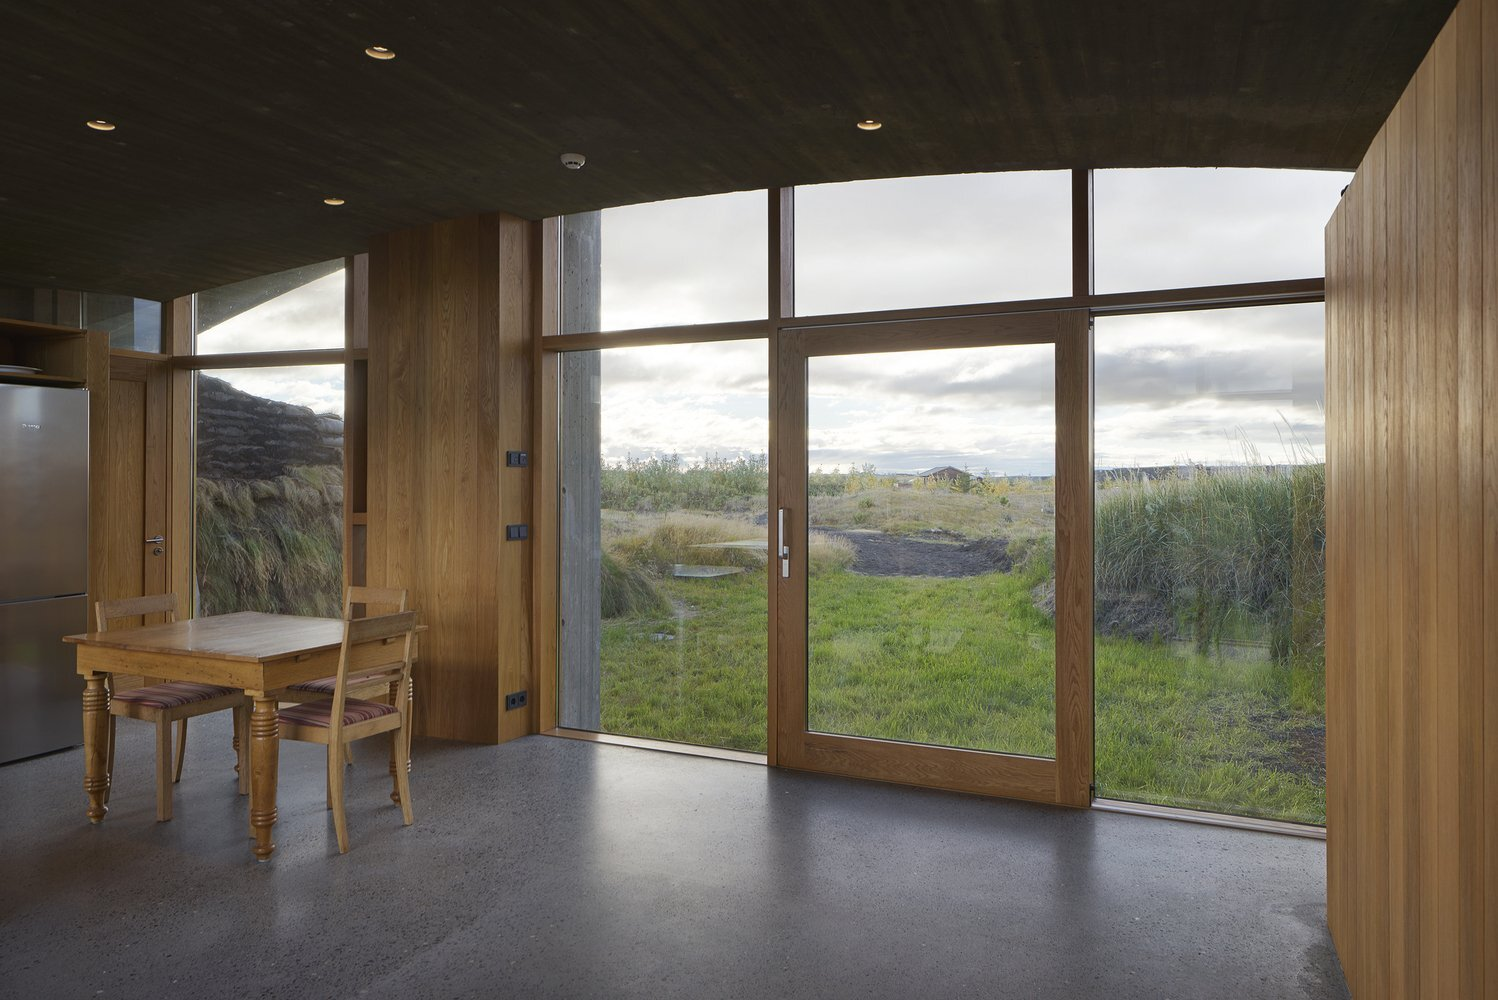 Garður Landhouse - Studio Granda - Iceland - Interior - Humble Homes